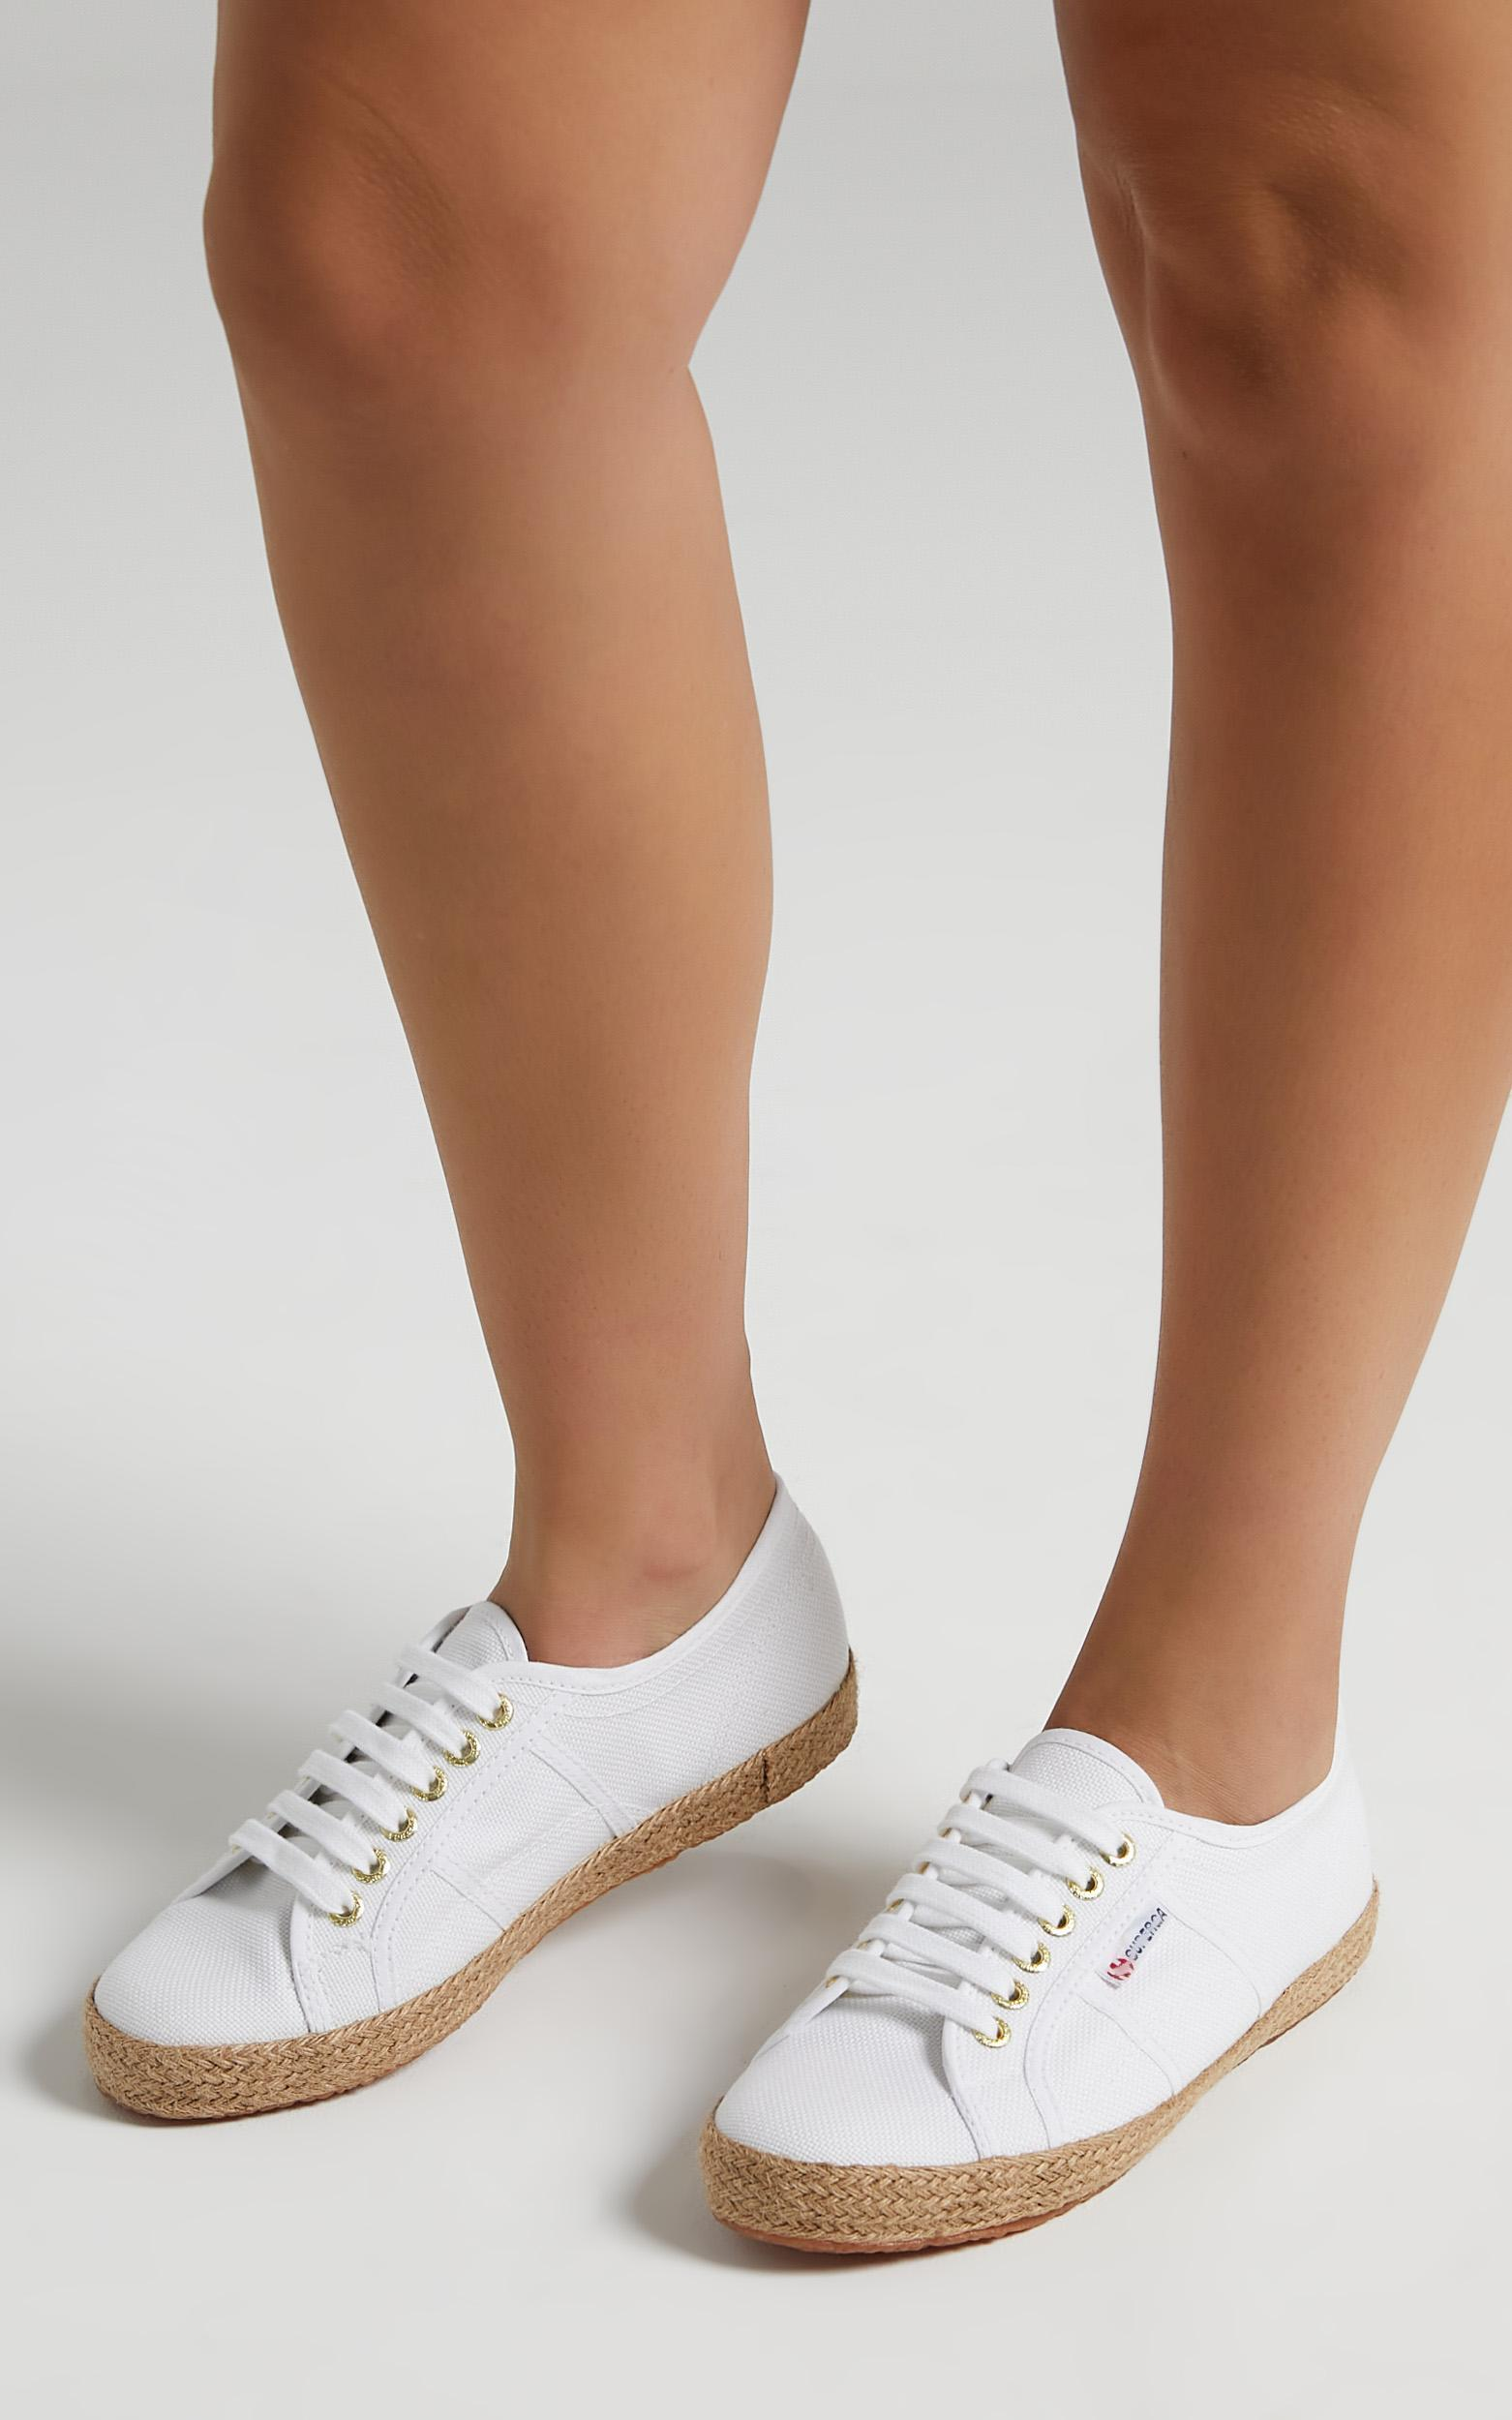 Superga - 2750 Cotrope Sneakers in White - Gold - 5, White, hi-res image number null